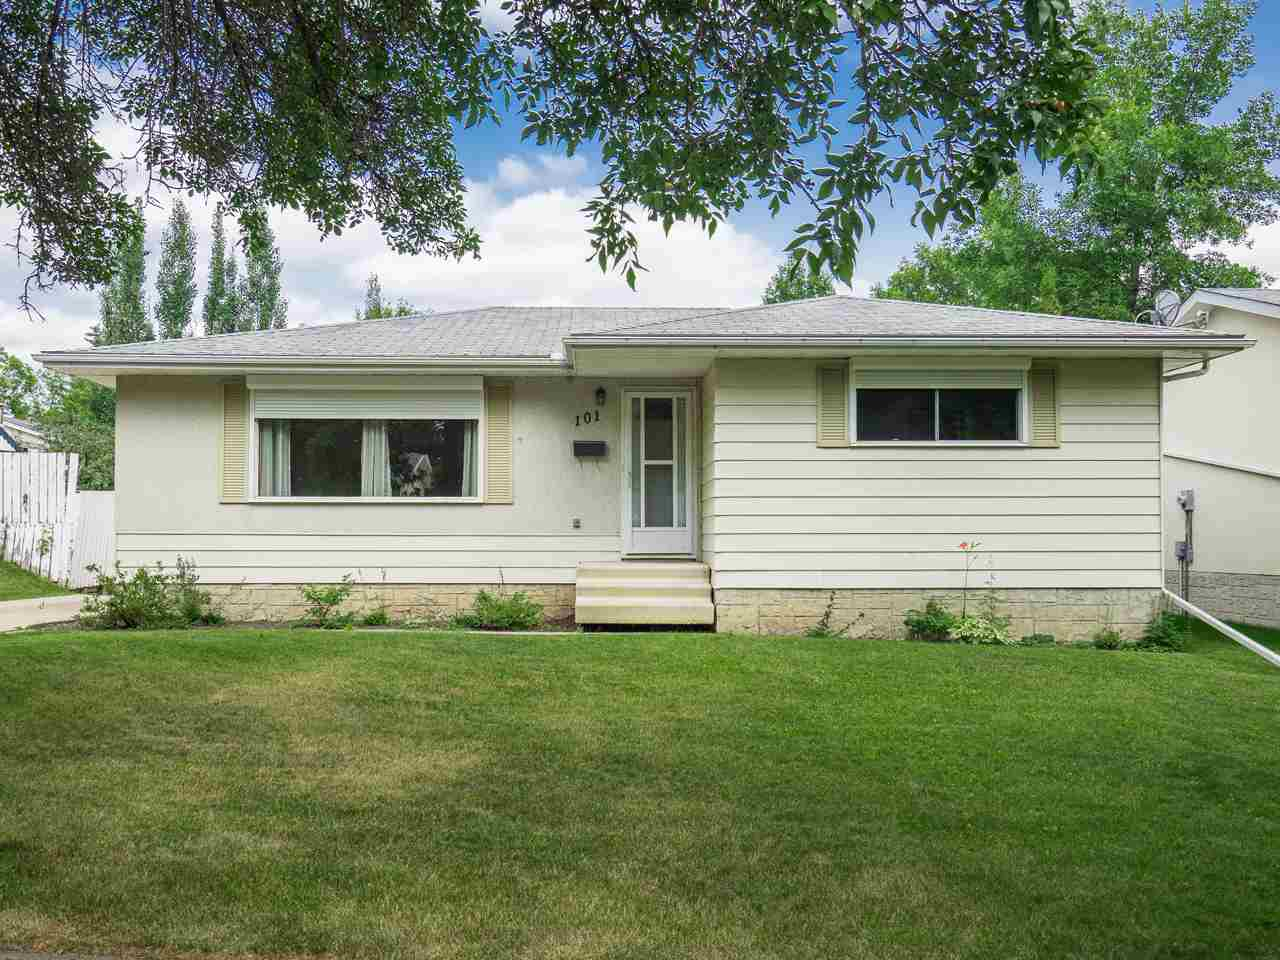 Main Photo: 101 MISSION Avenue: St. Albert House for sale : MLS(r) # E4063294